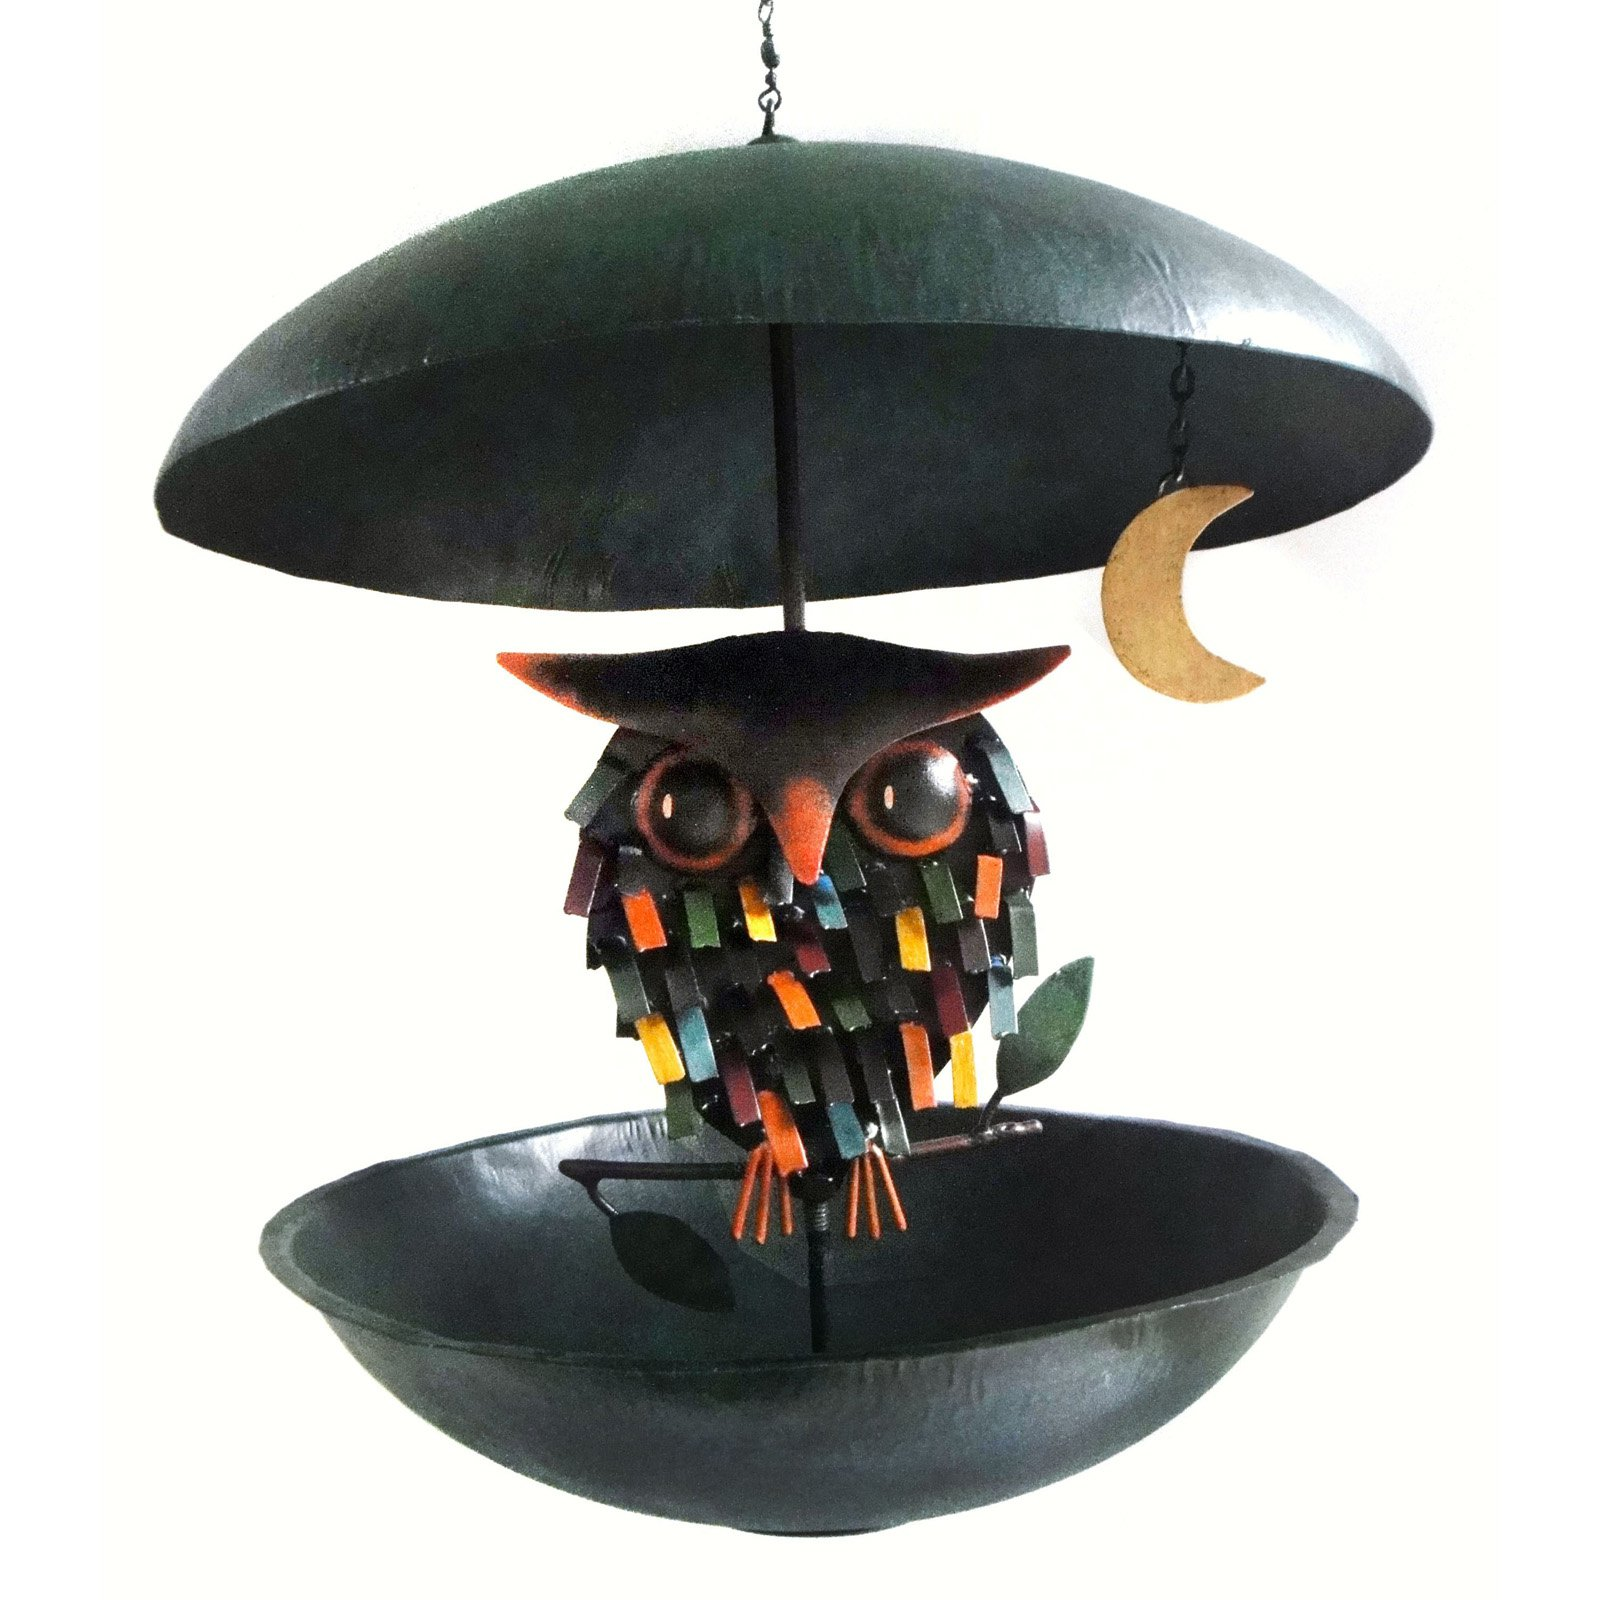 Gift Essentials Spiky Owl Bistro Bird Feeder